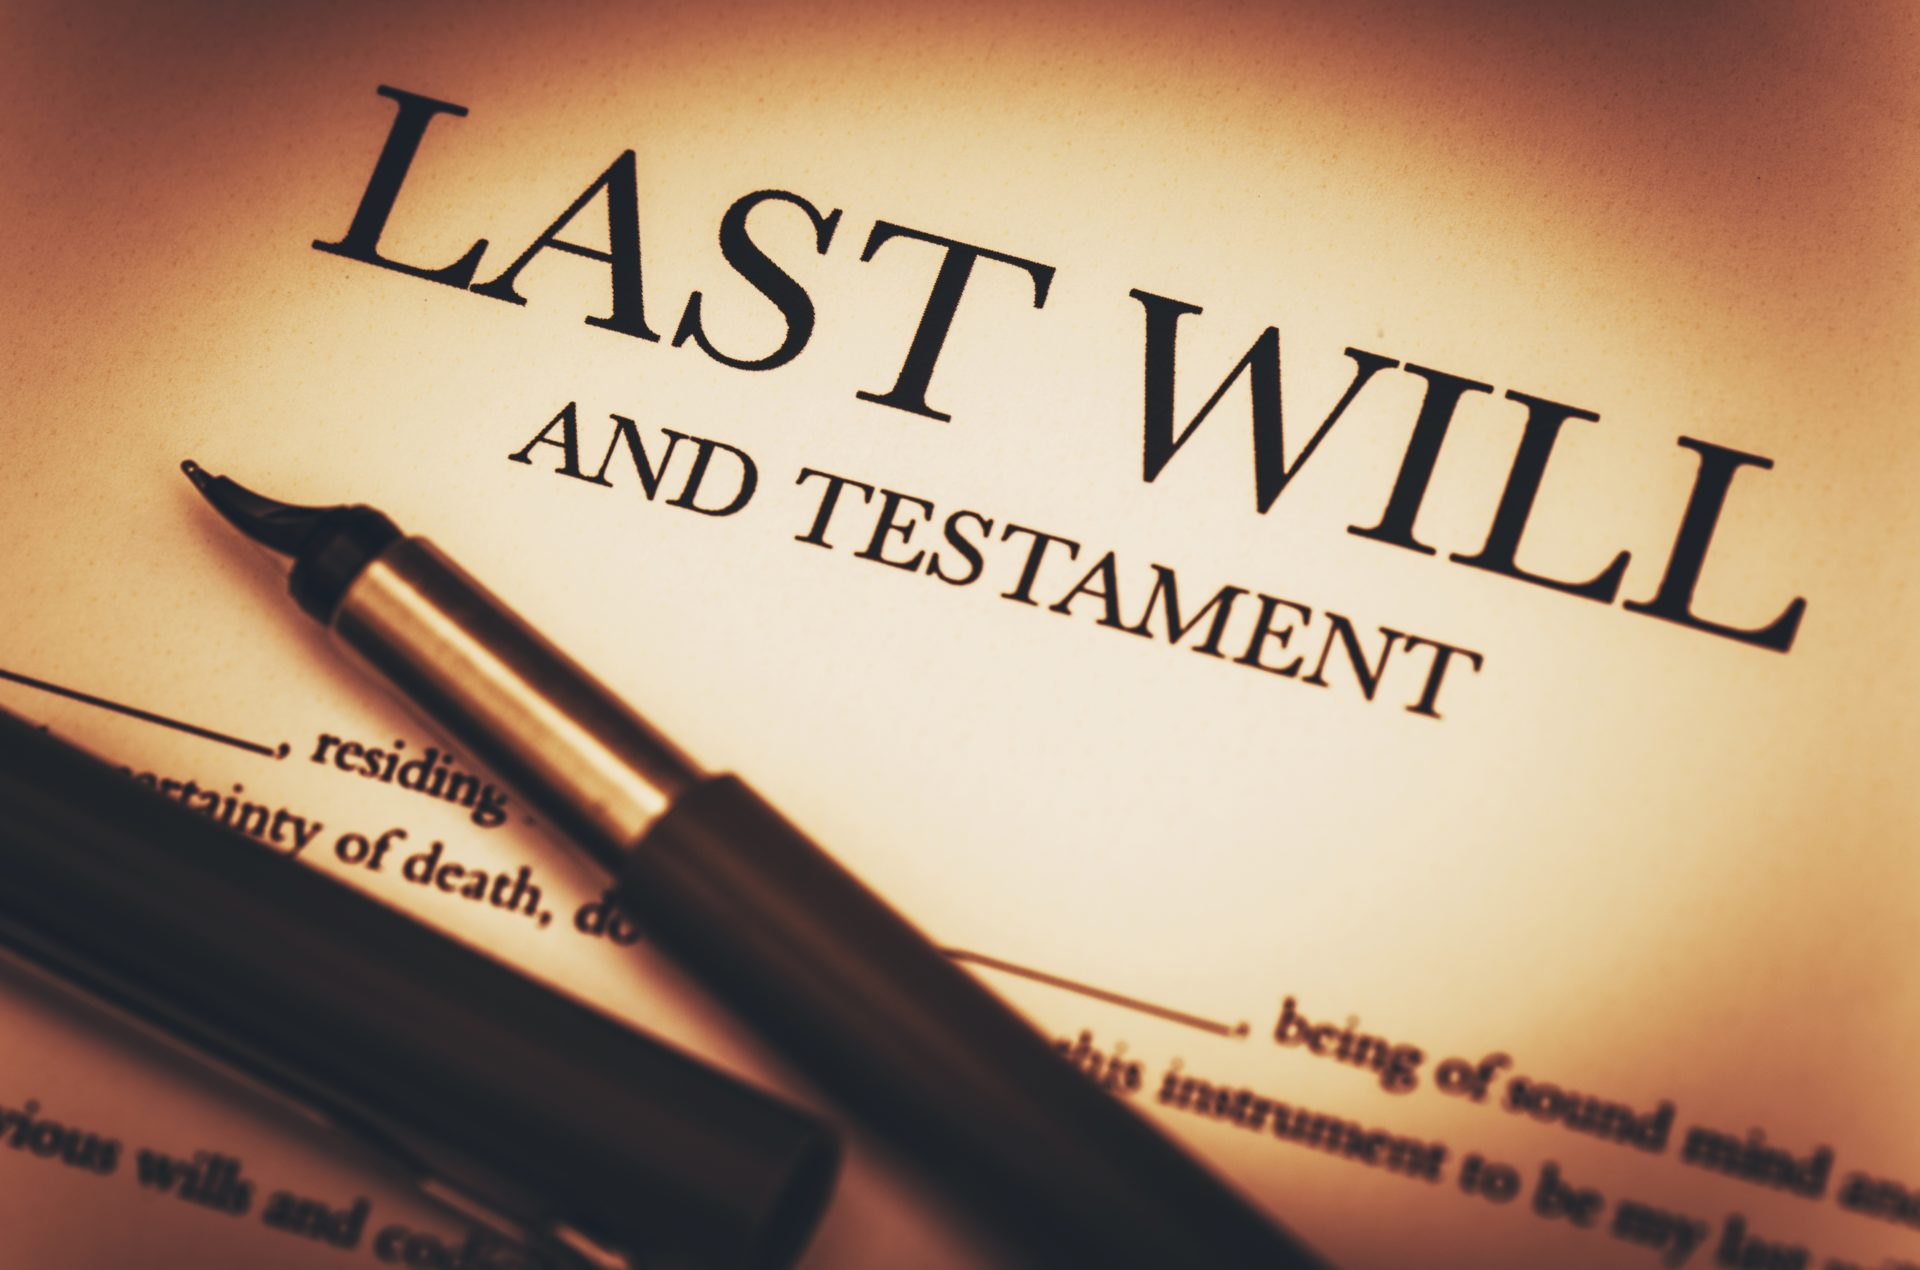 All I Will for Christmas Is - picture of last will and testament with a pen